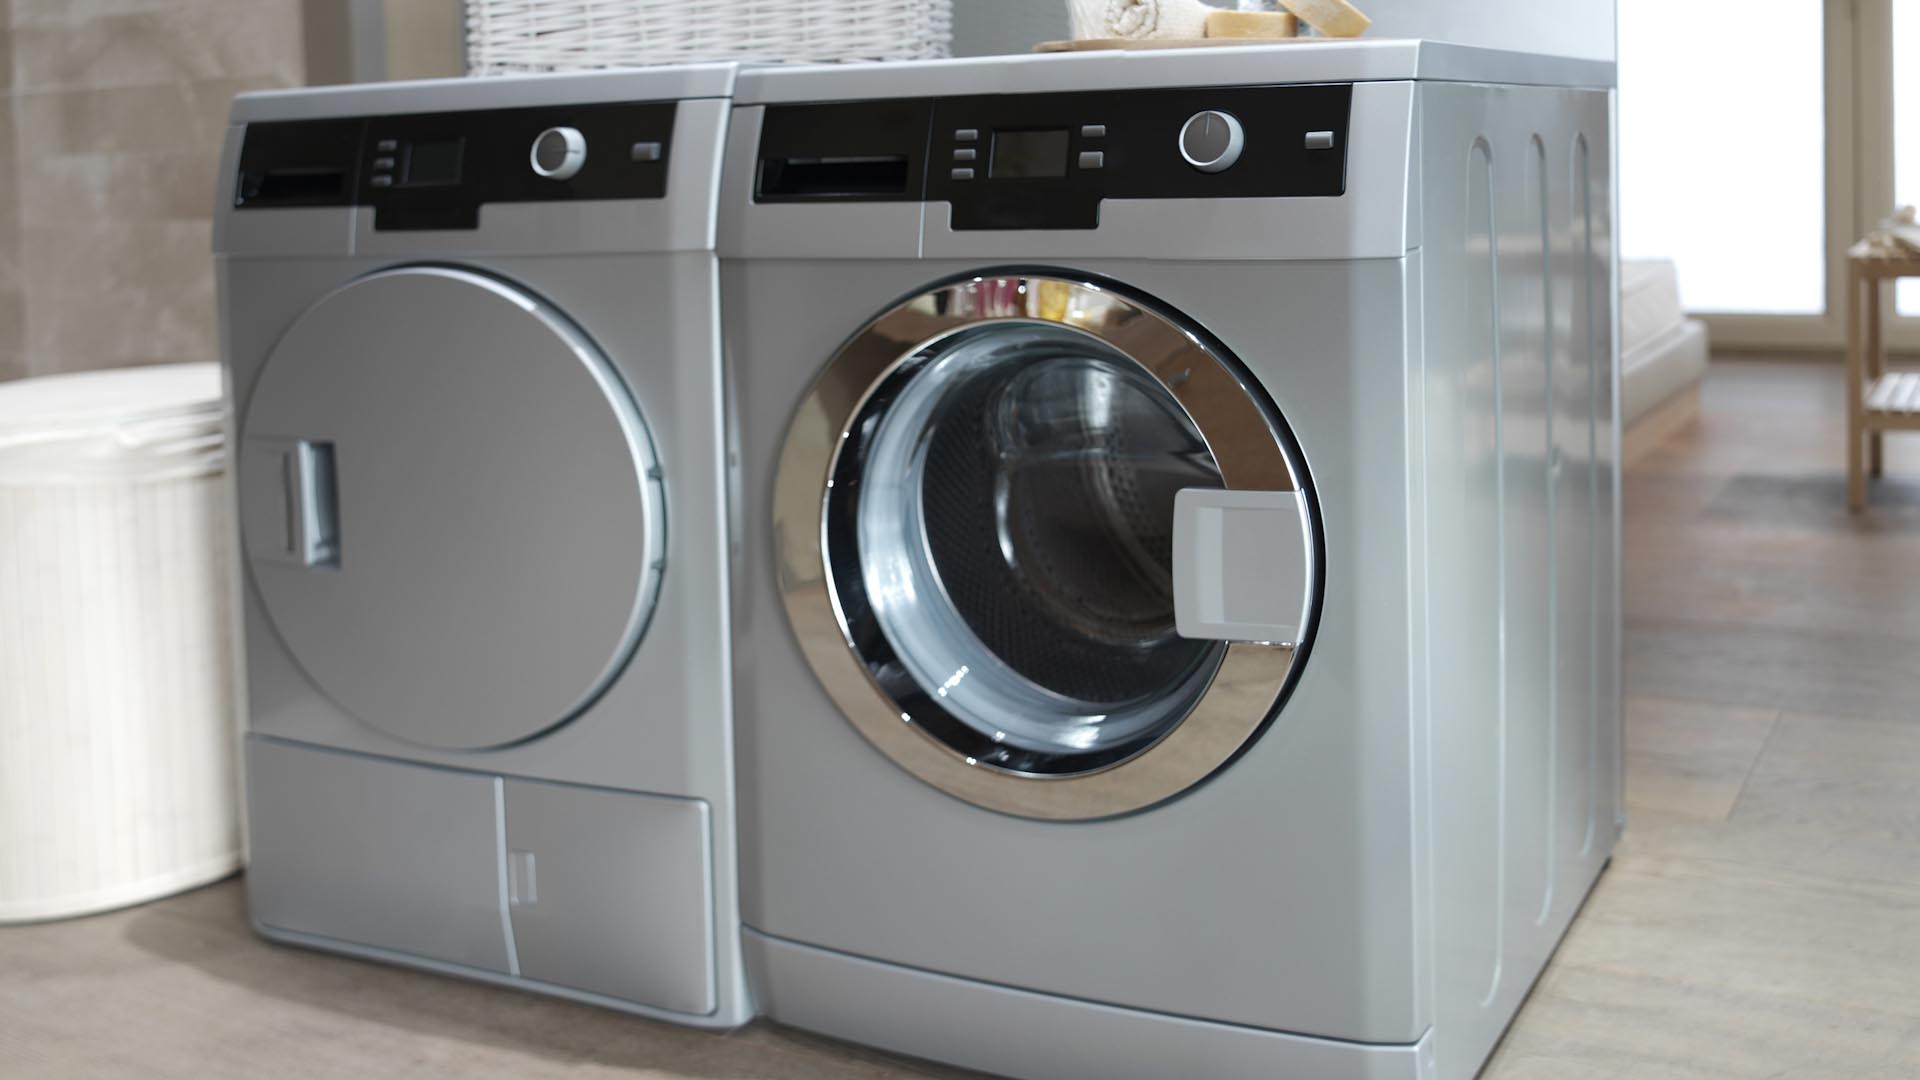 Wonderful Washing Machine With Dryer Review Part - 4: Consumer Reports